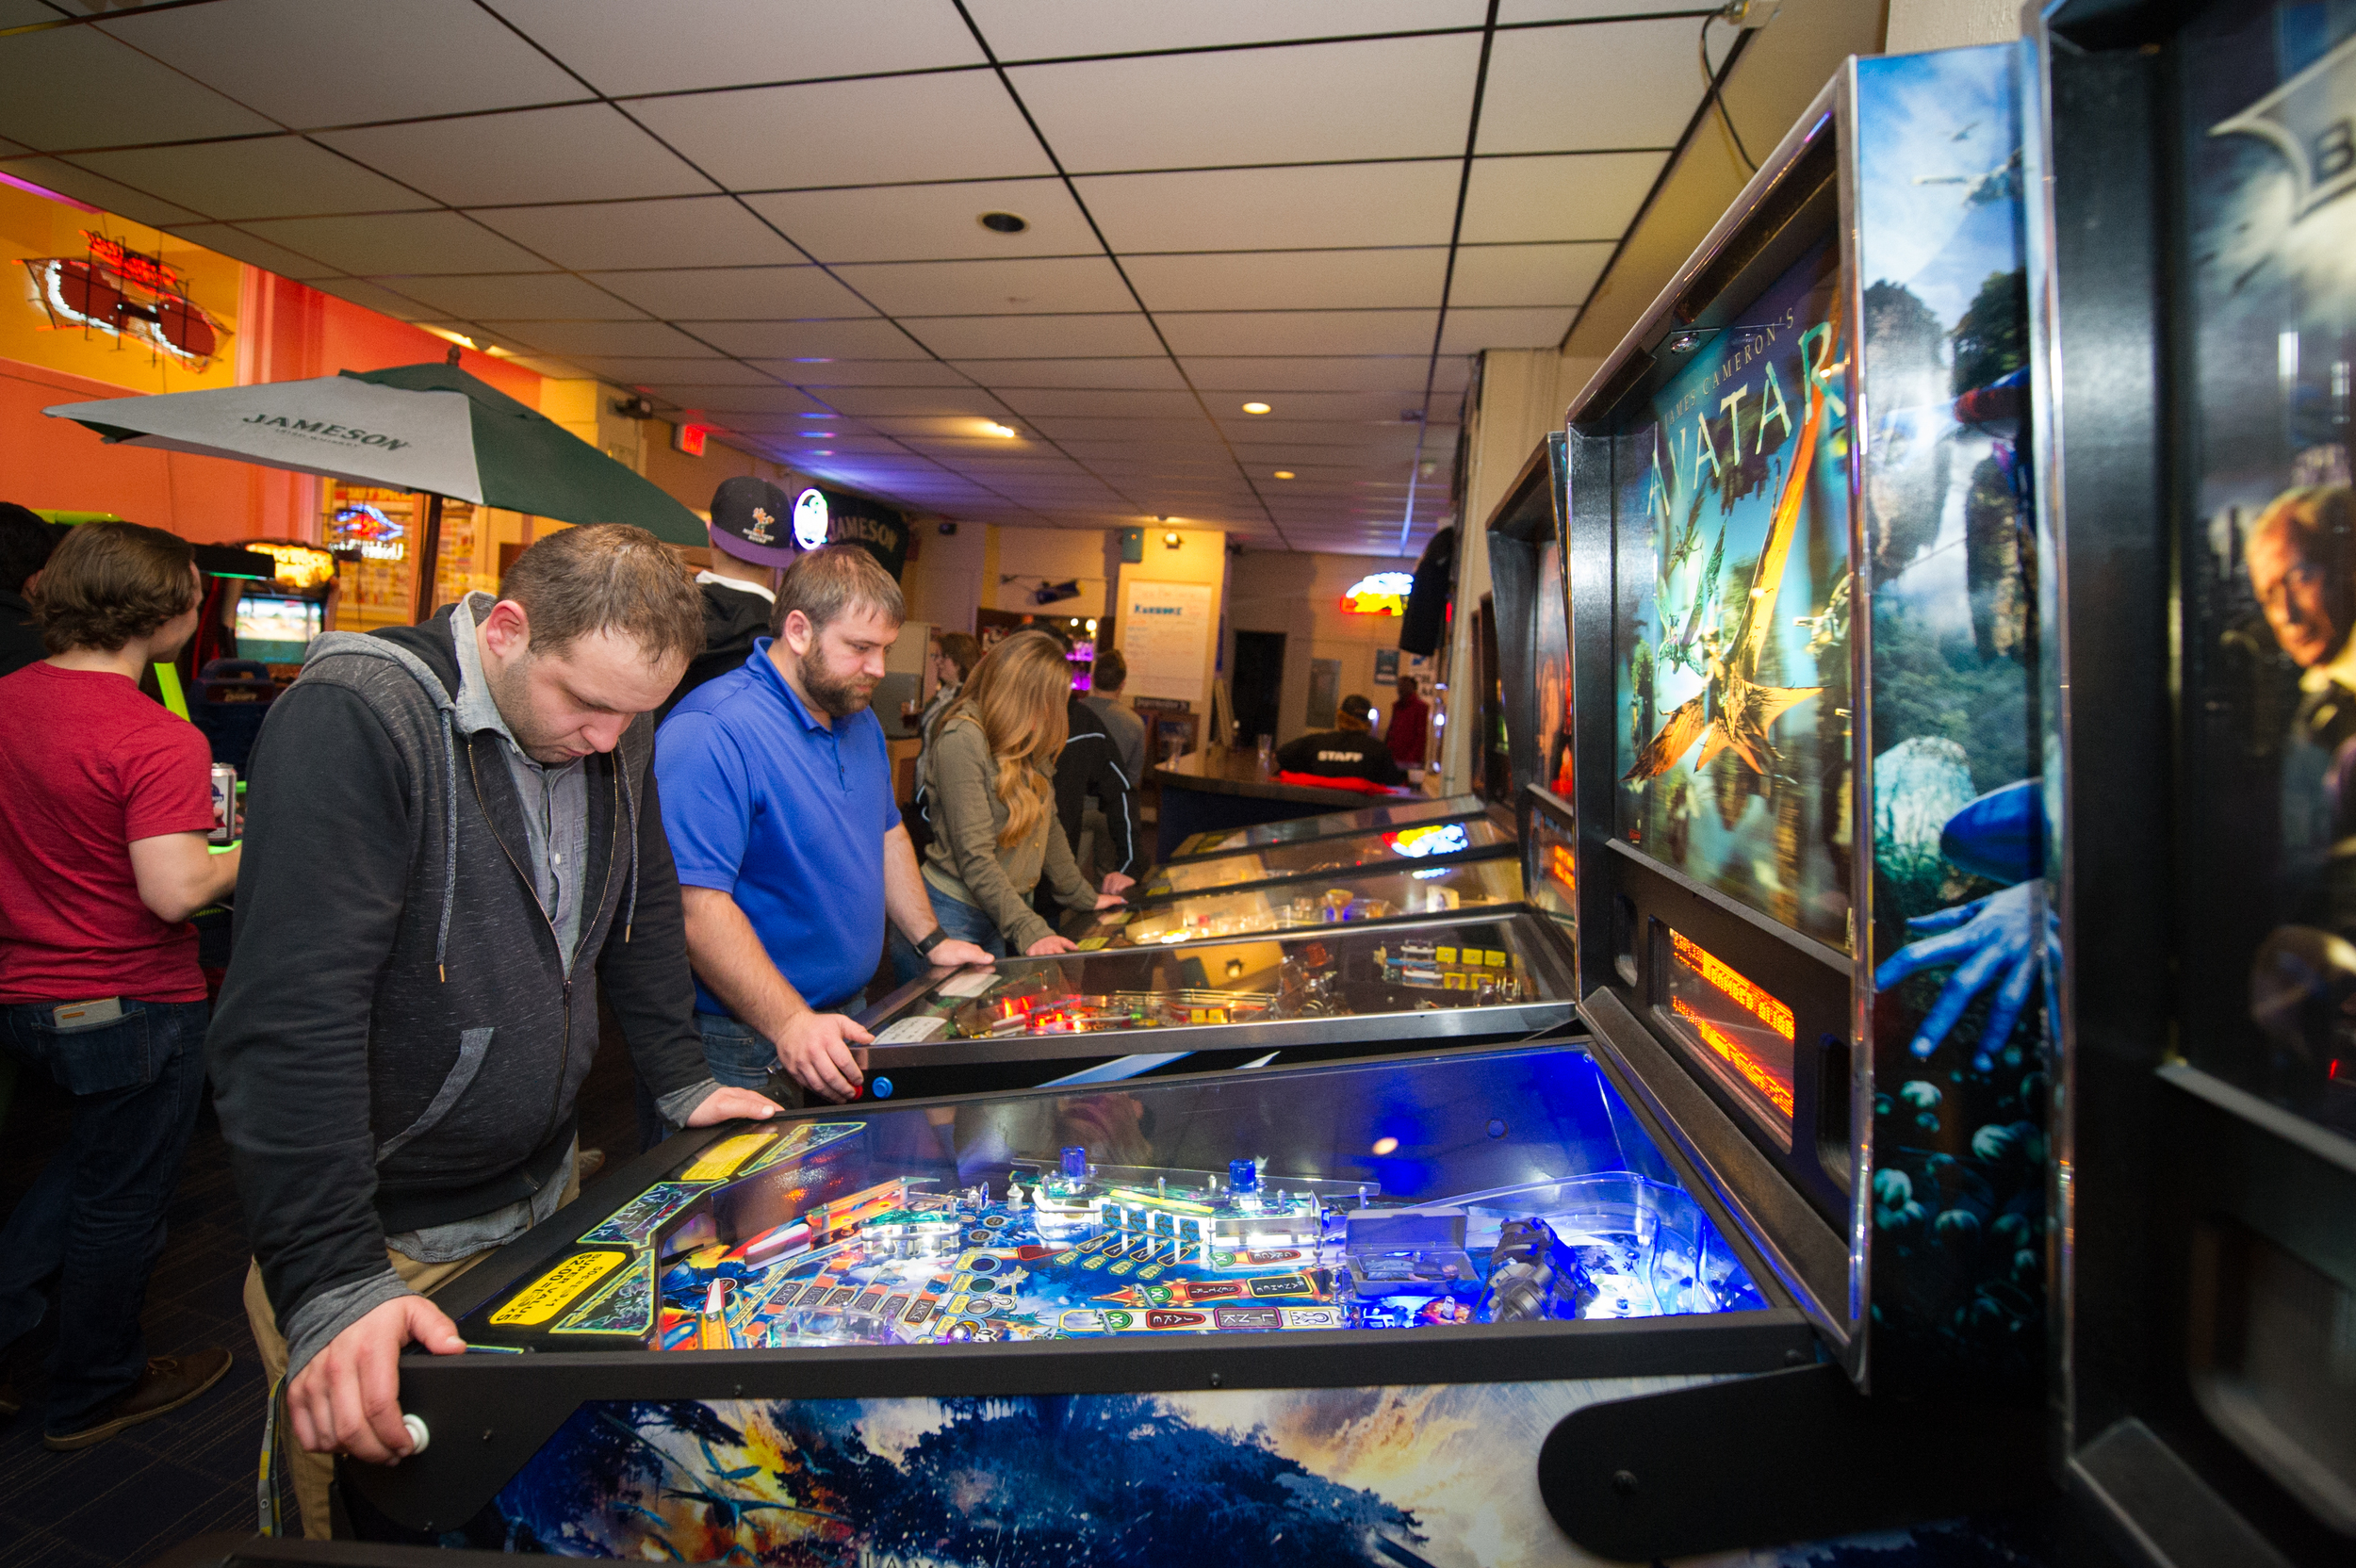 Pinball arcade at Landmark Lanes